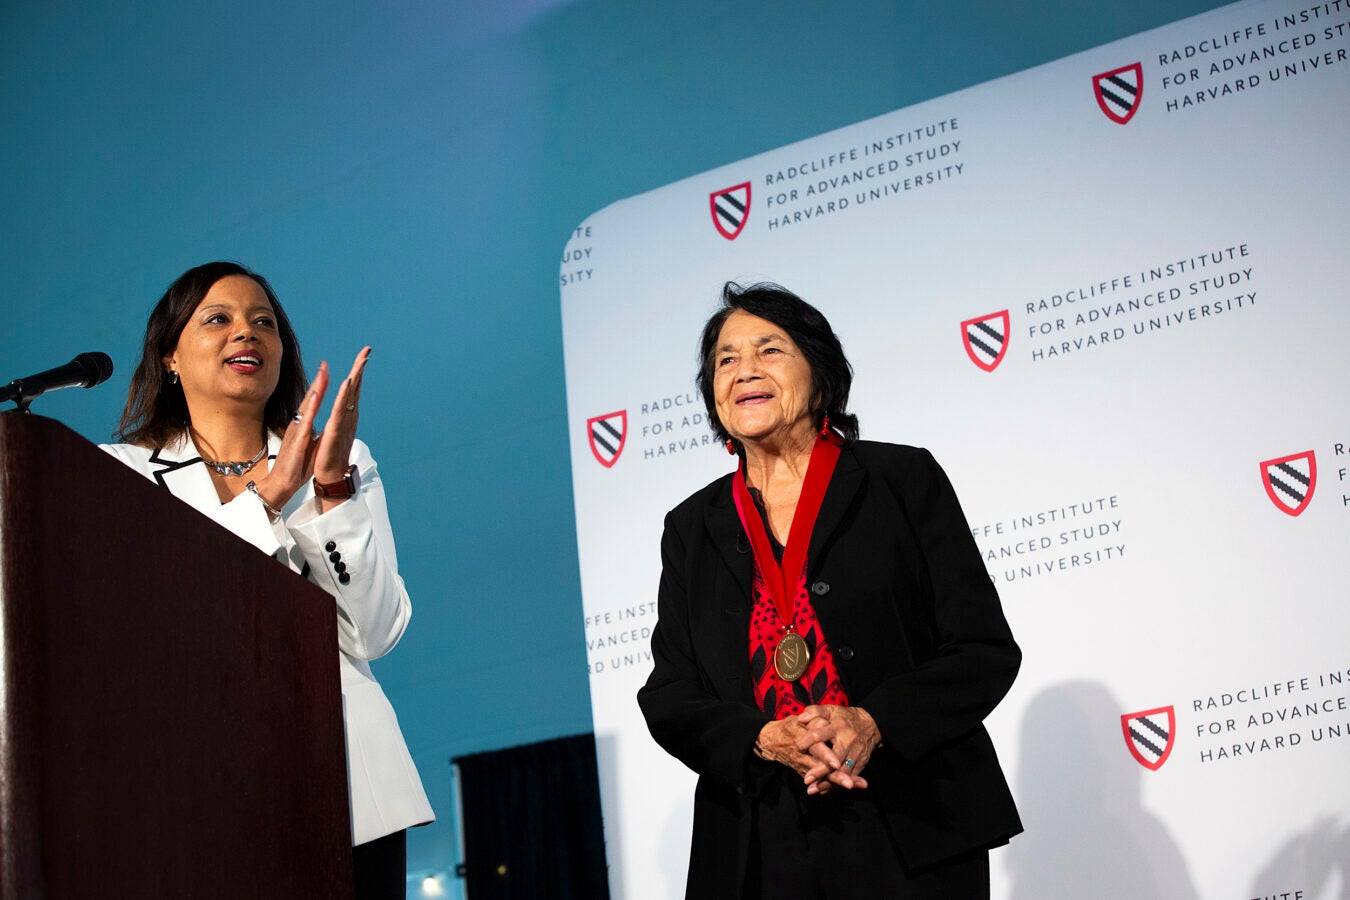 Radcliffe Dean Tomiko Brown-Nagin (left) awards Dolores Huerta with the Radcliffe Medal.